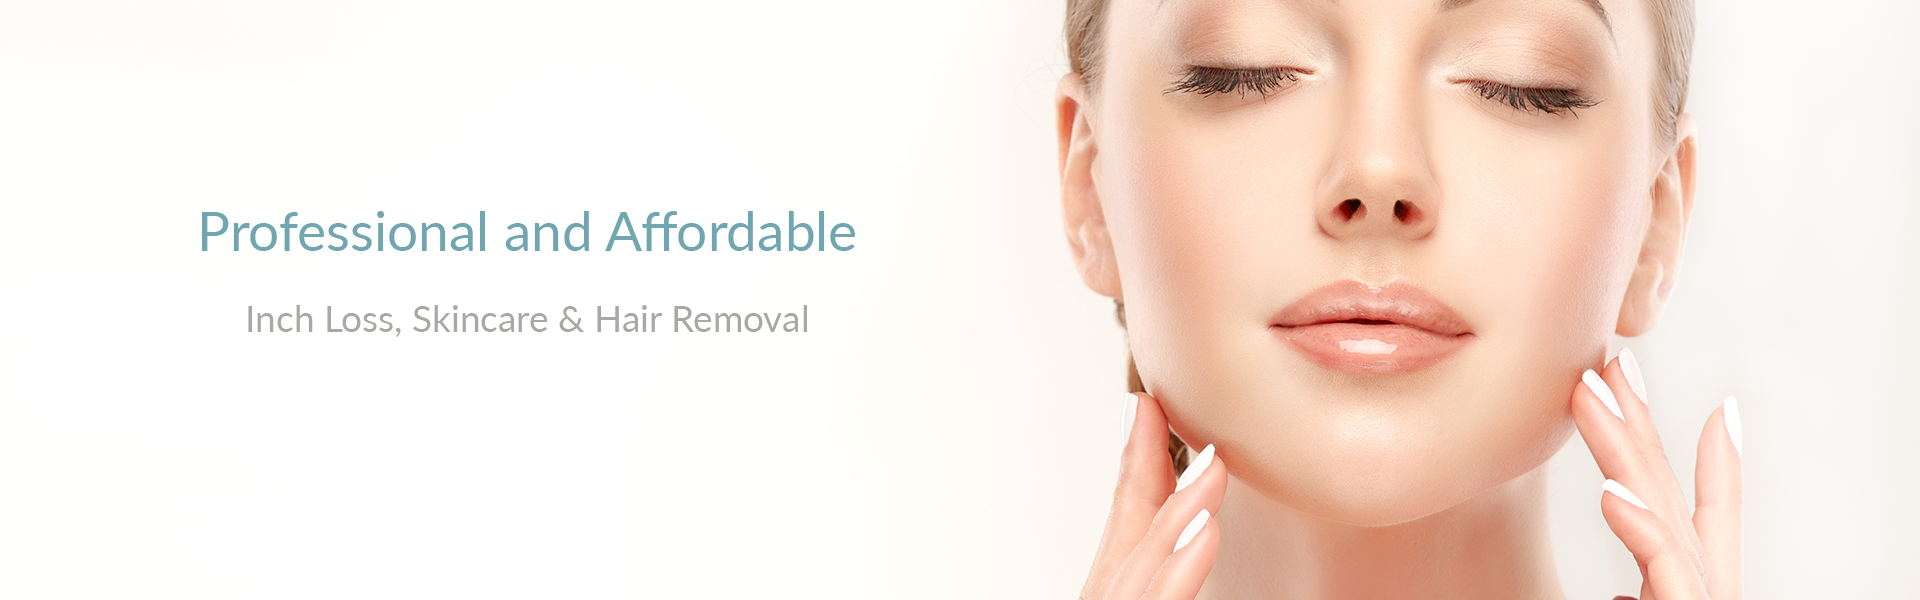 Cheshire Aesthetic Clinic | Inch Loss Skin Care and Hair Removal Chester | Beauty Image